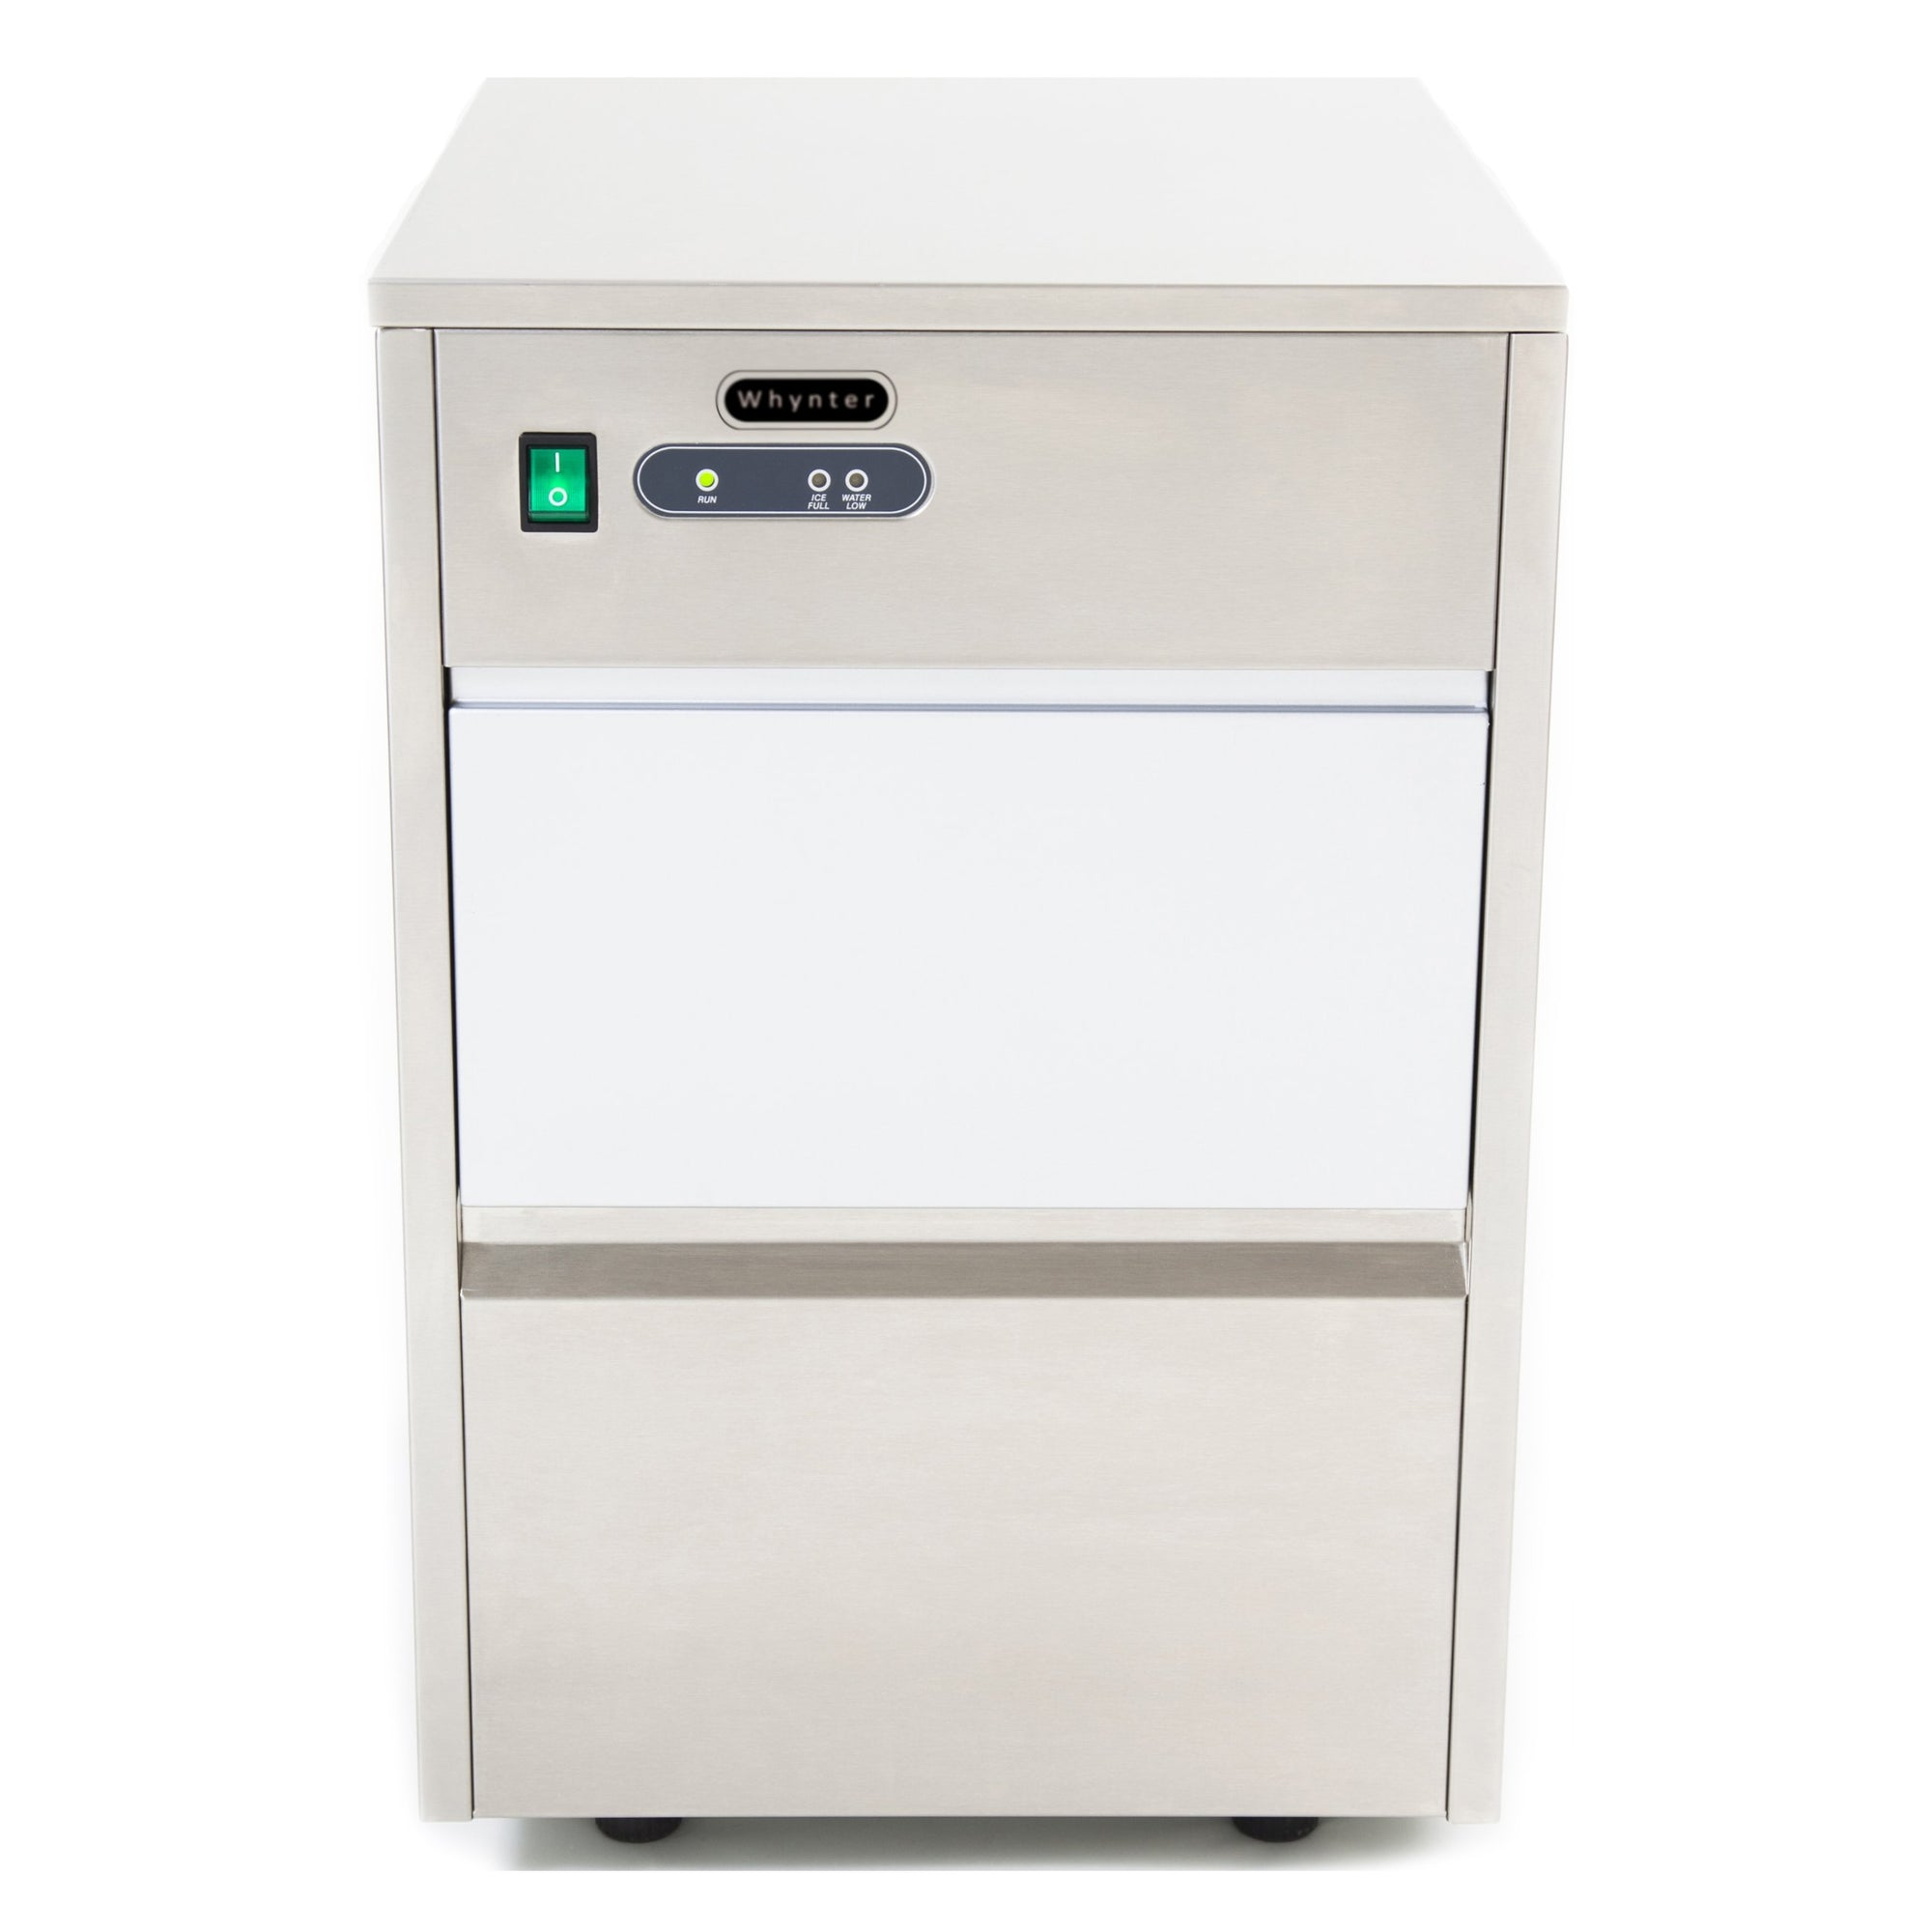 Whynter Freestanding Ice Maker